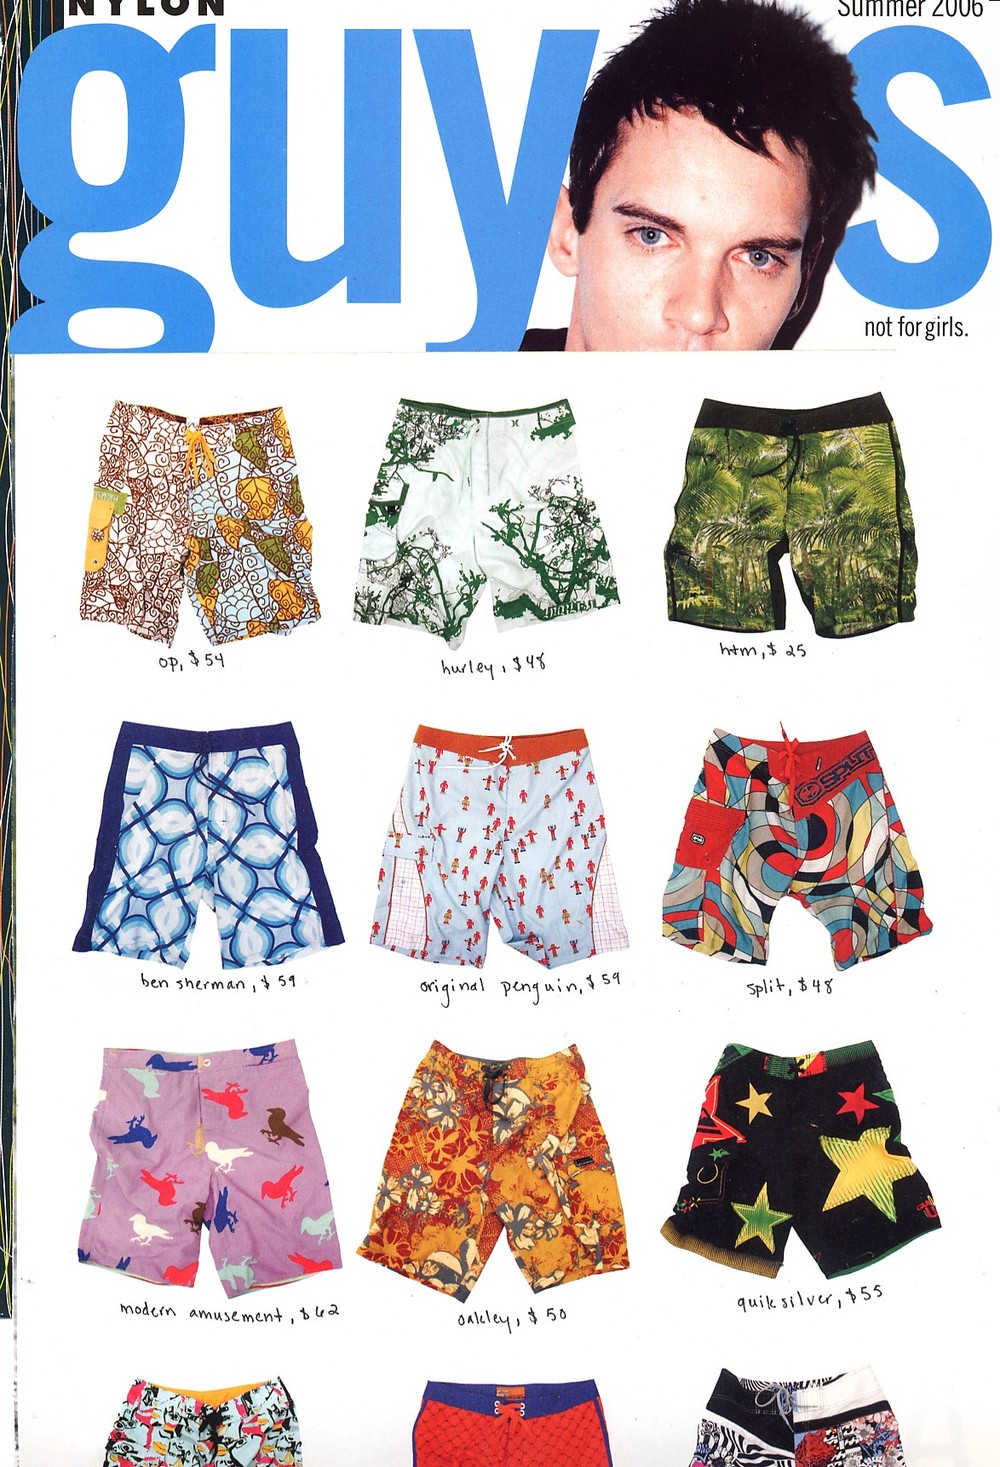 Nylon Guys- Summer 06 - Trunks.jpg